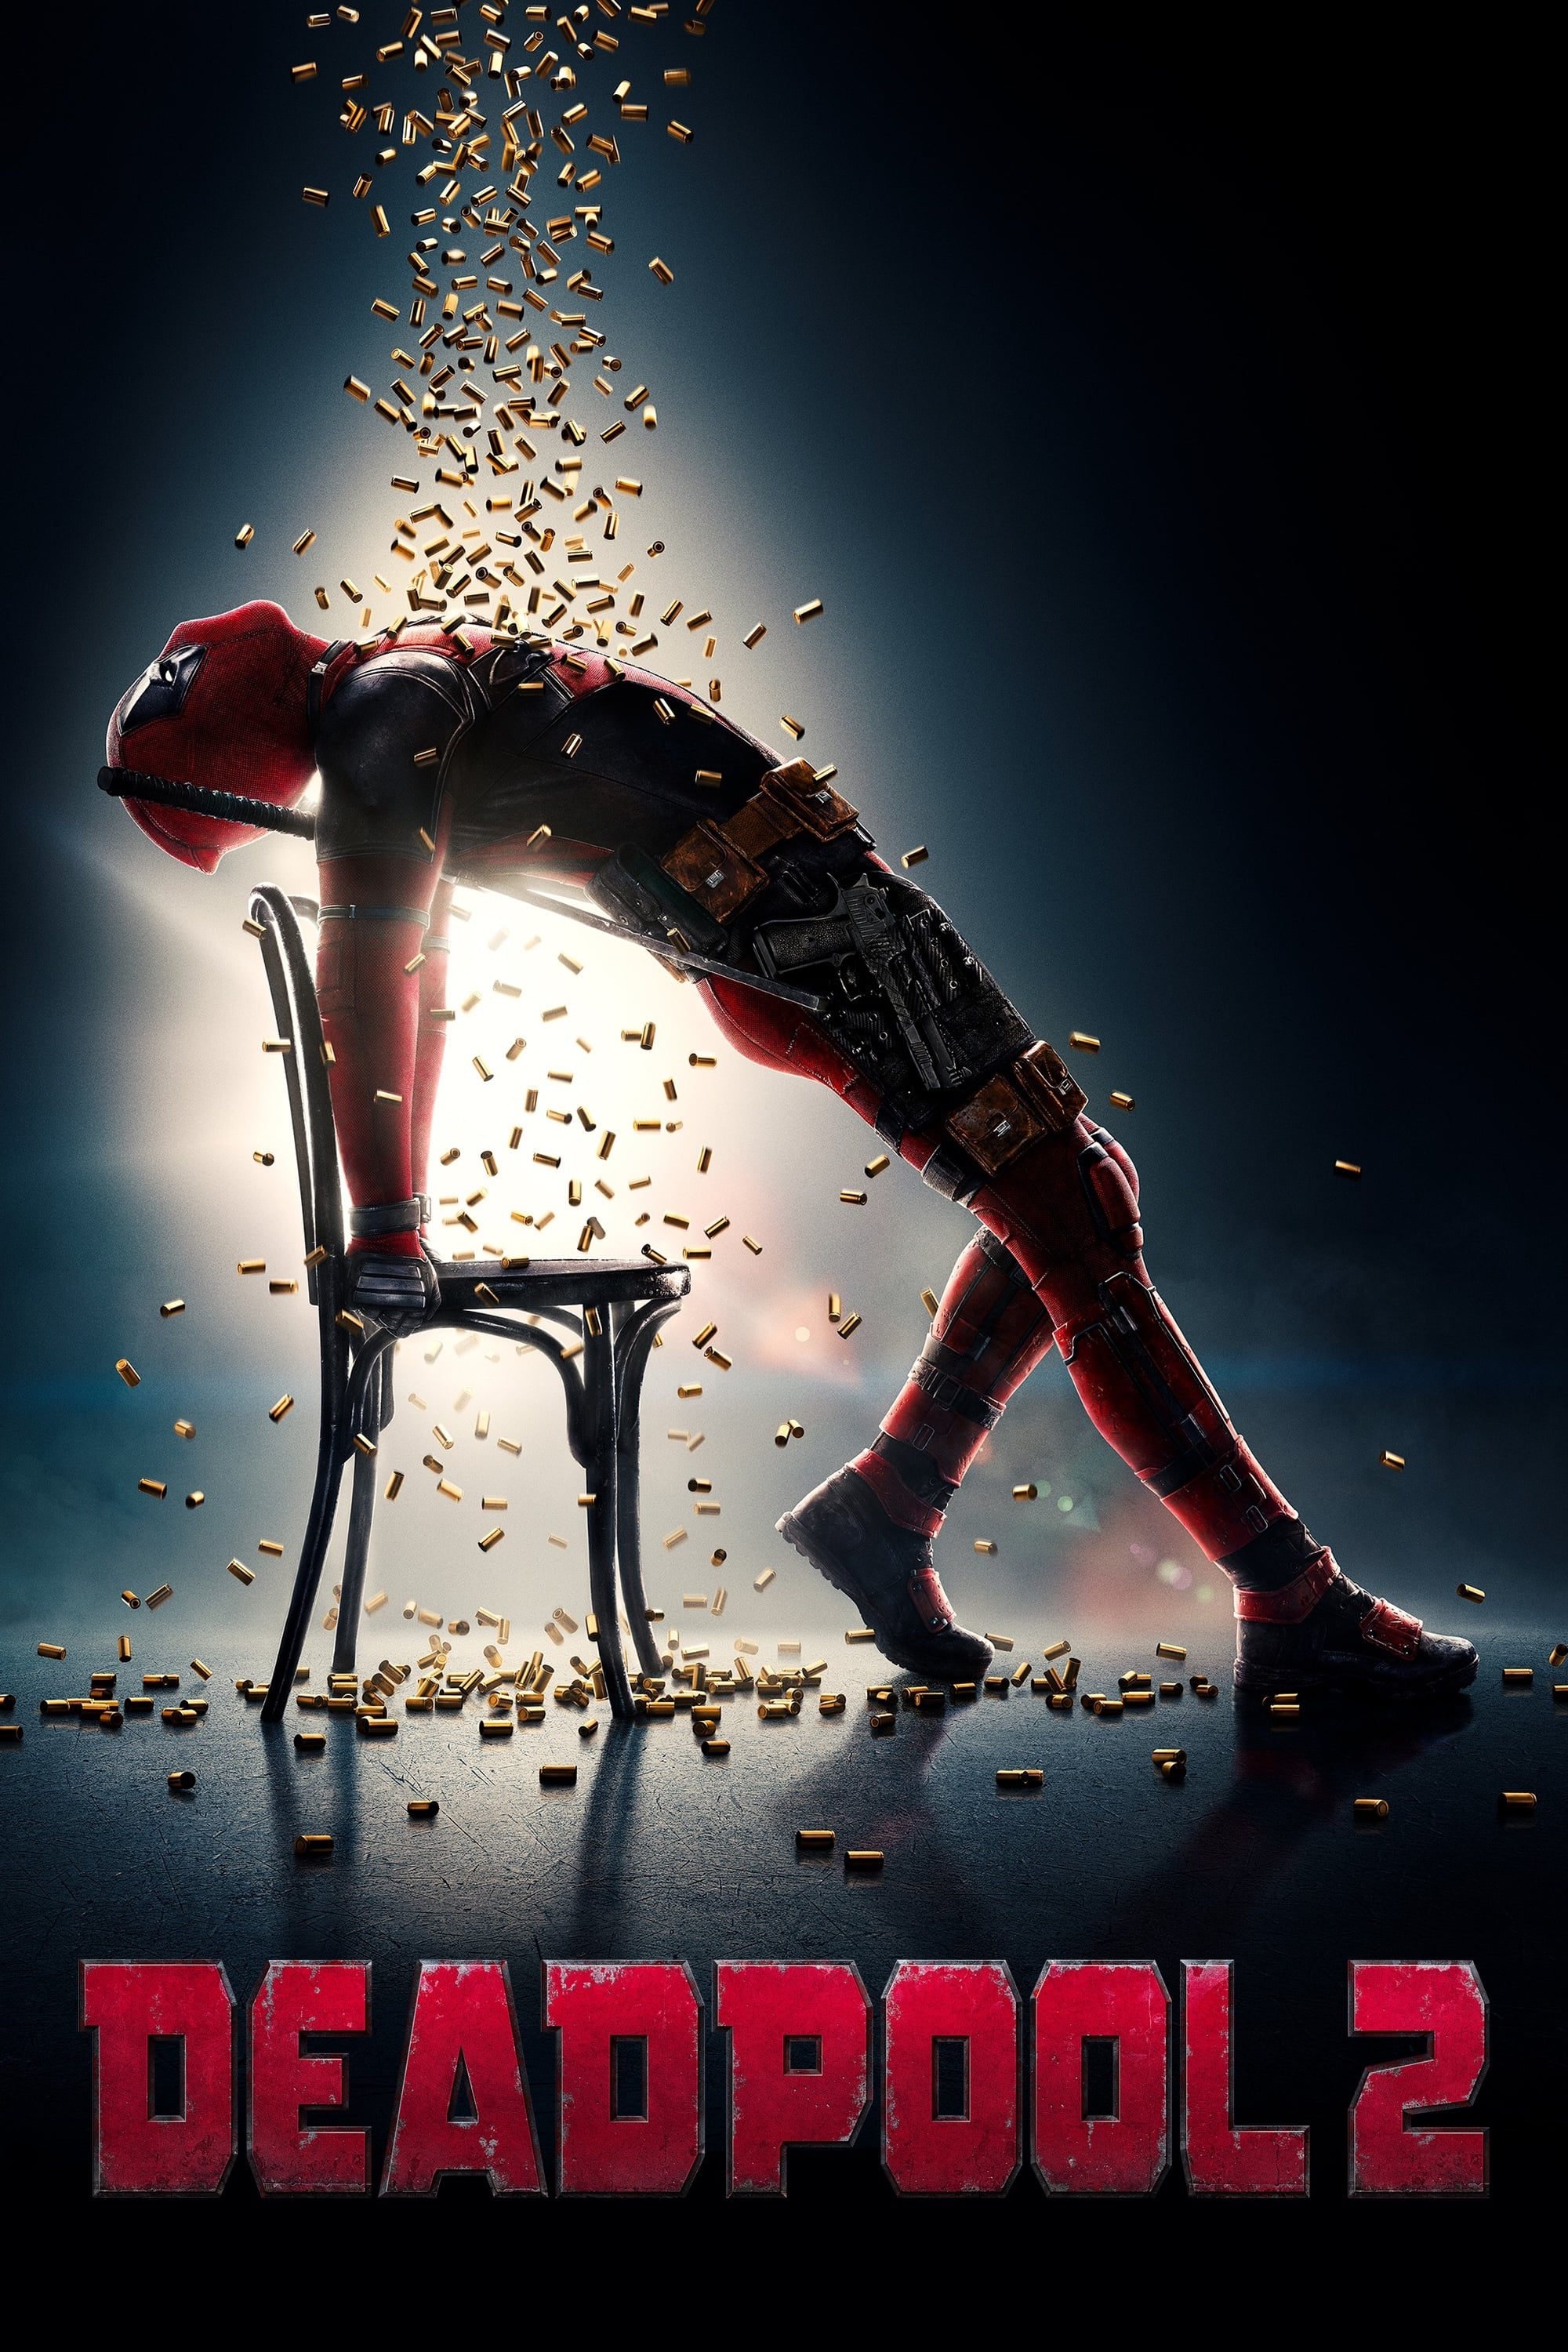 The Untitled Deadpool Sequel 2018